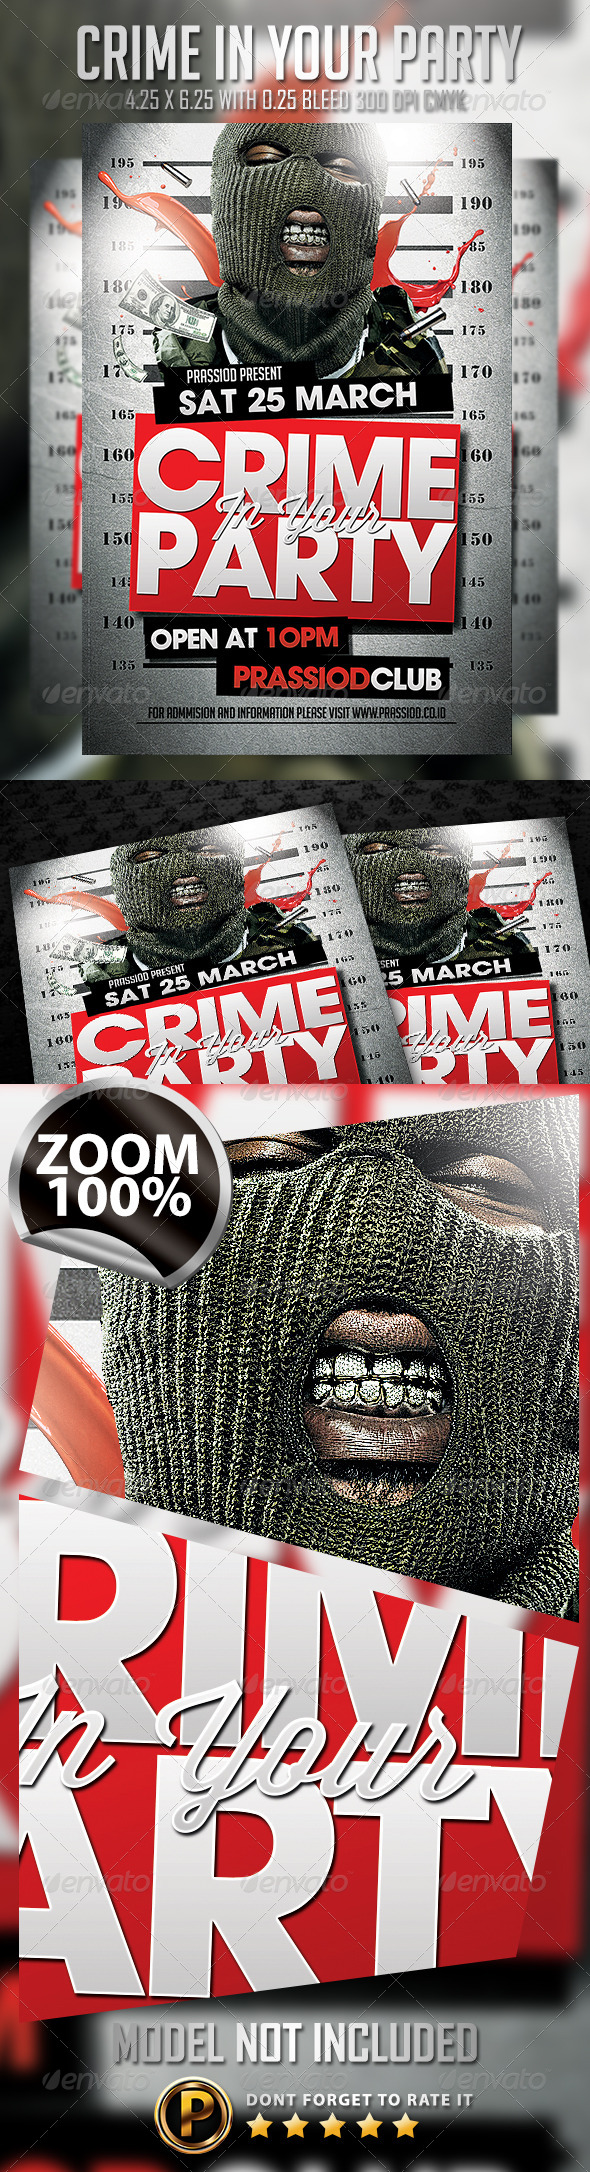 Crime In Your Party Flyer Template - Clubs & Parties Events